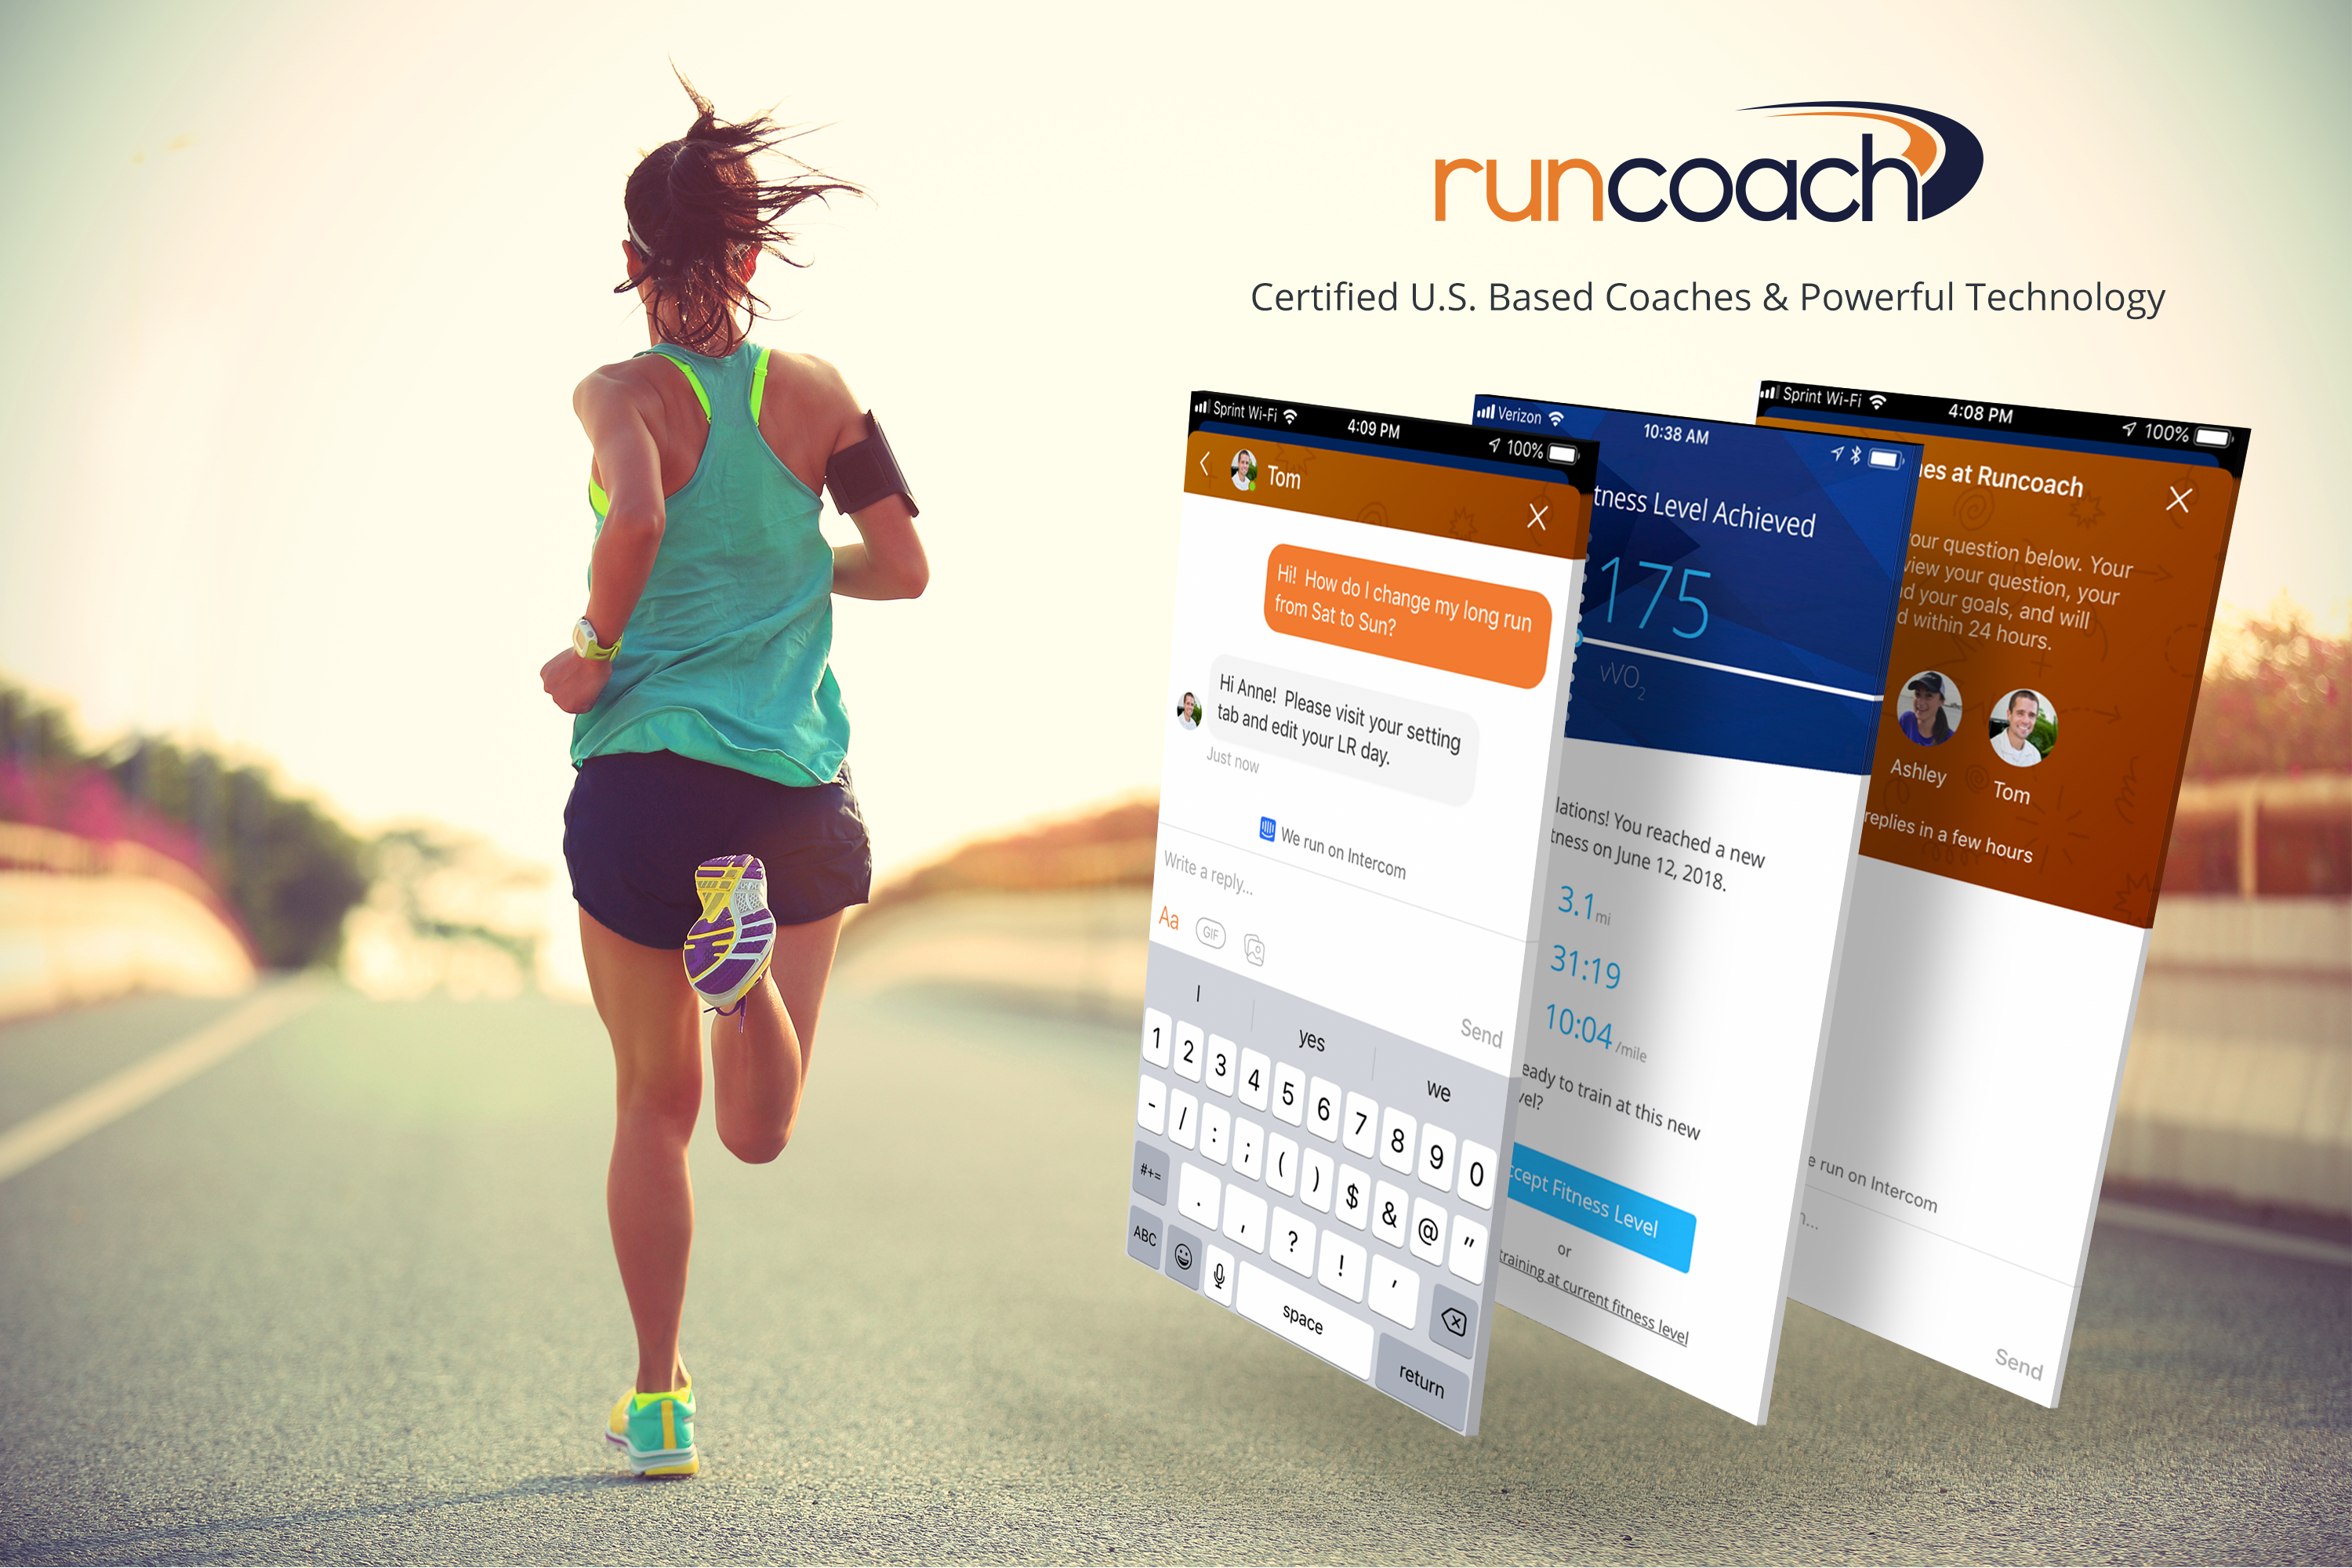 Finish the year strong with guidance from Runcoach Image